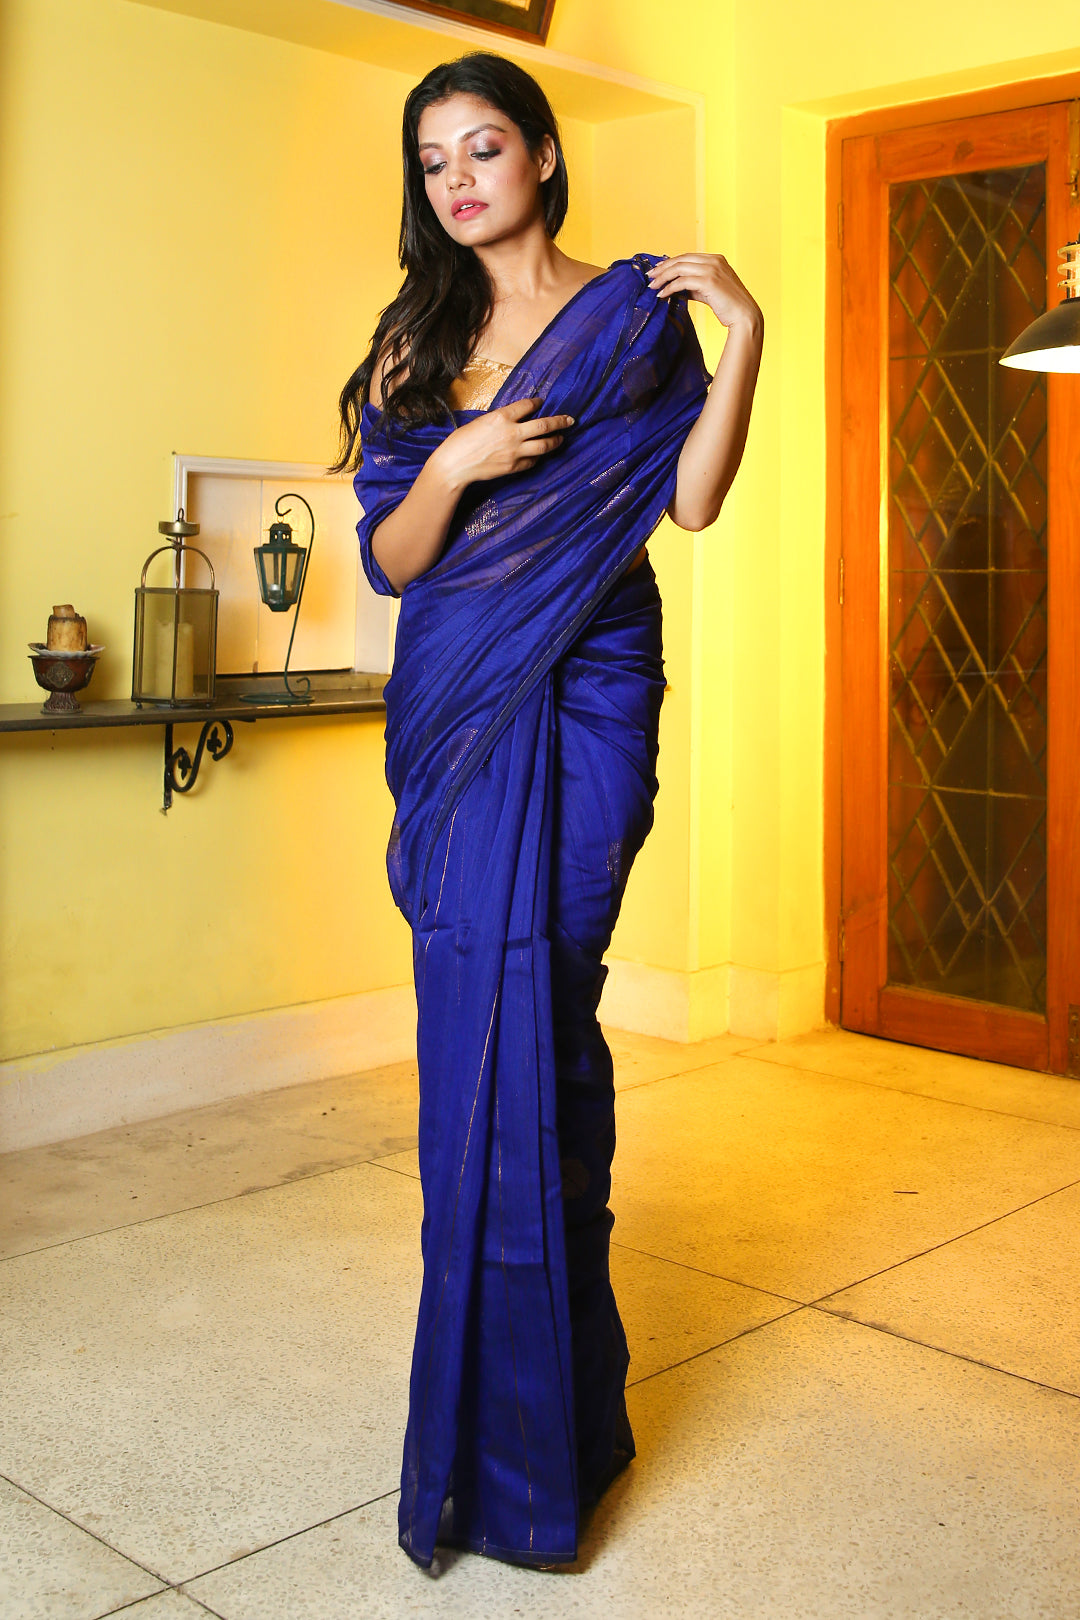 NAVY BLUE BLENDED COTTON SAREE WITH ALL OVER ZARI POLKA DOT WEAVING AND PALLU